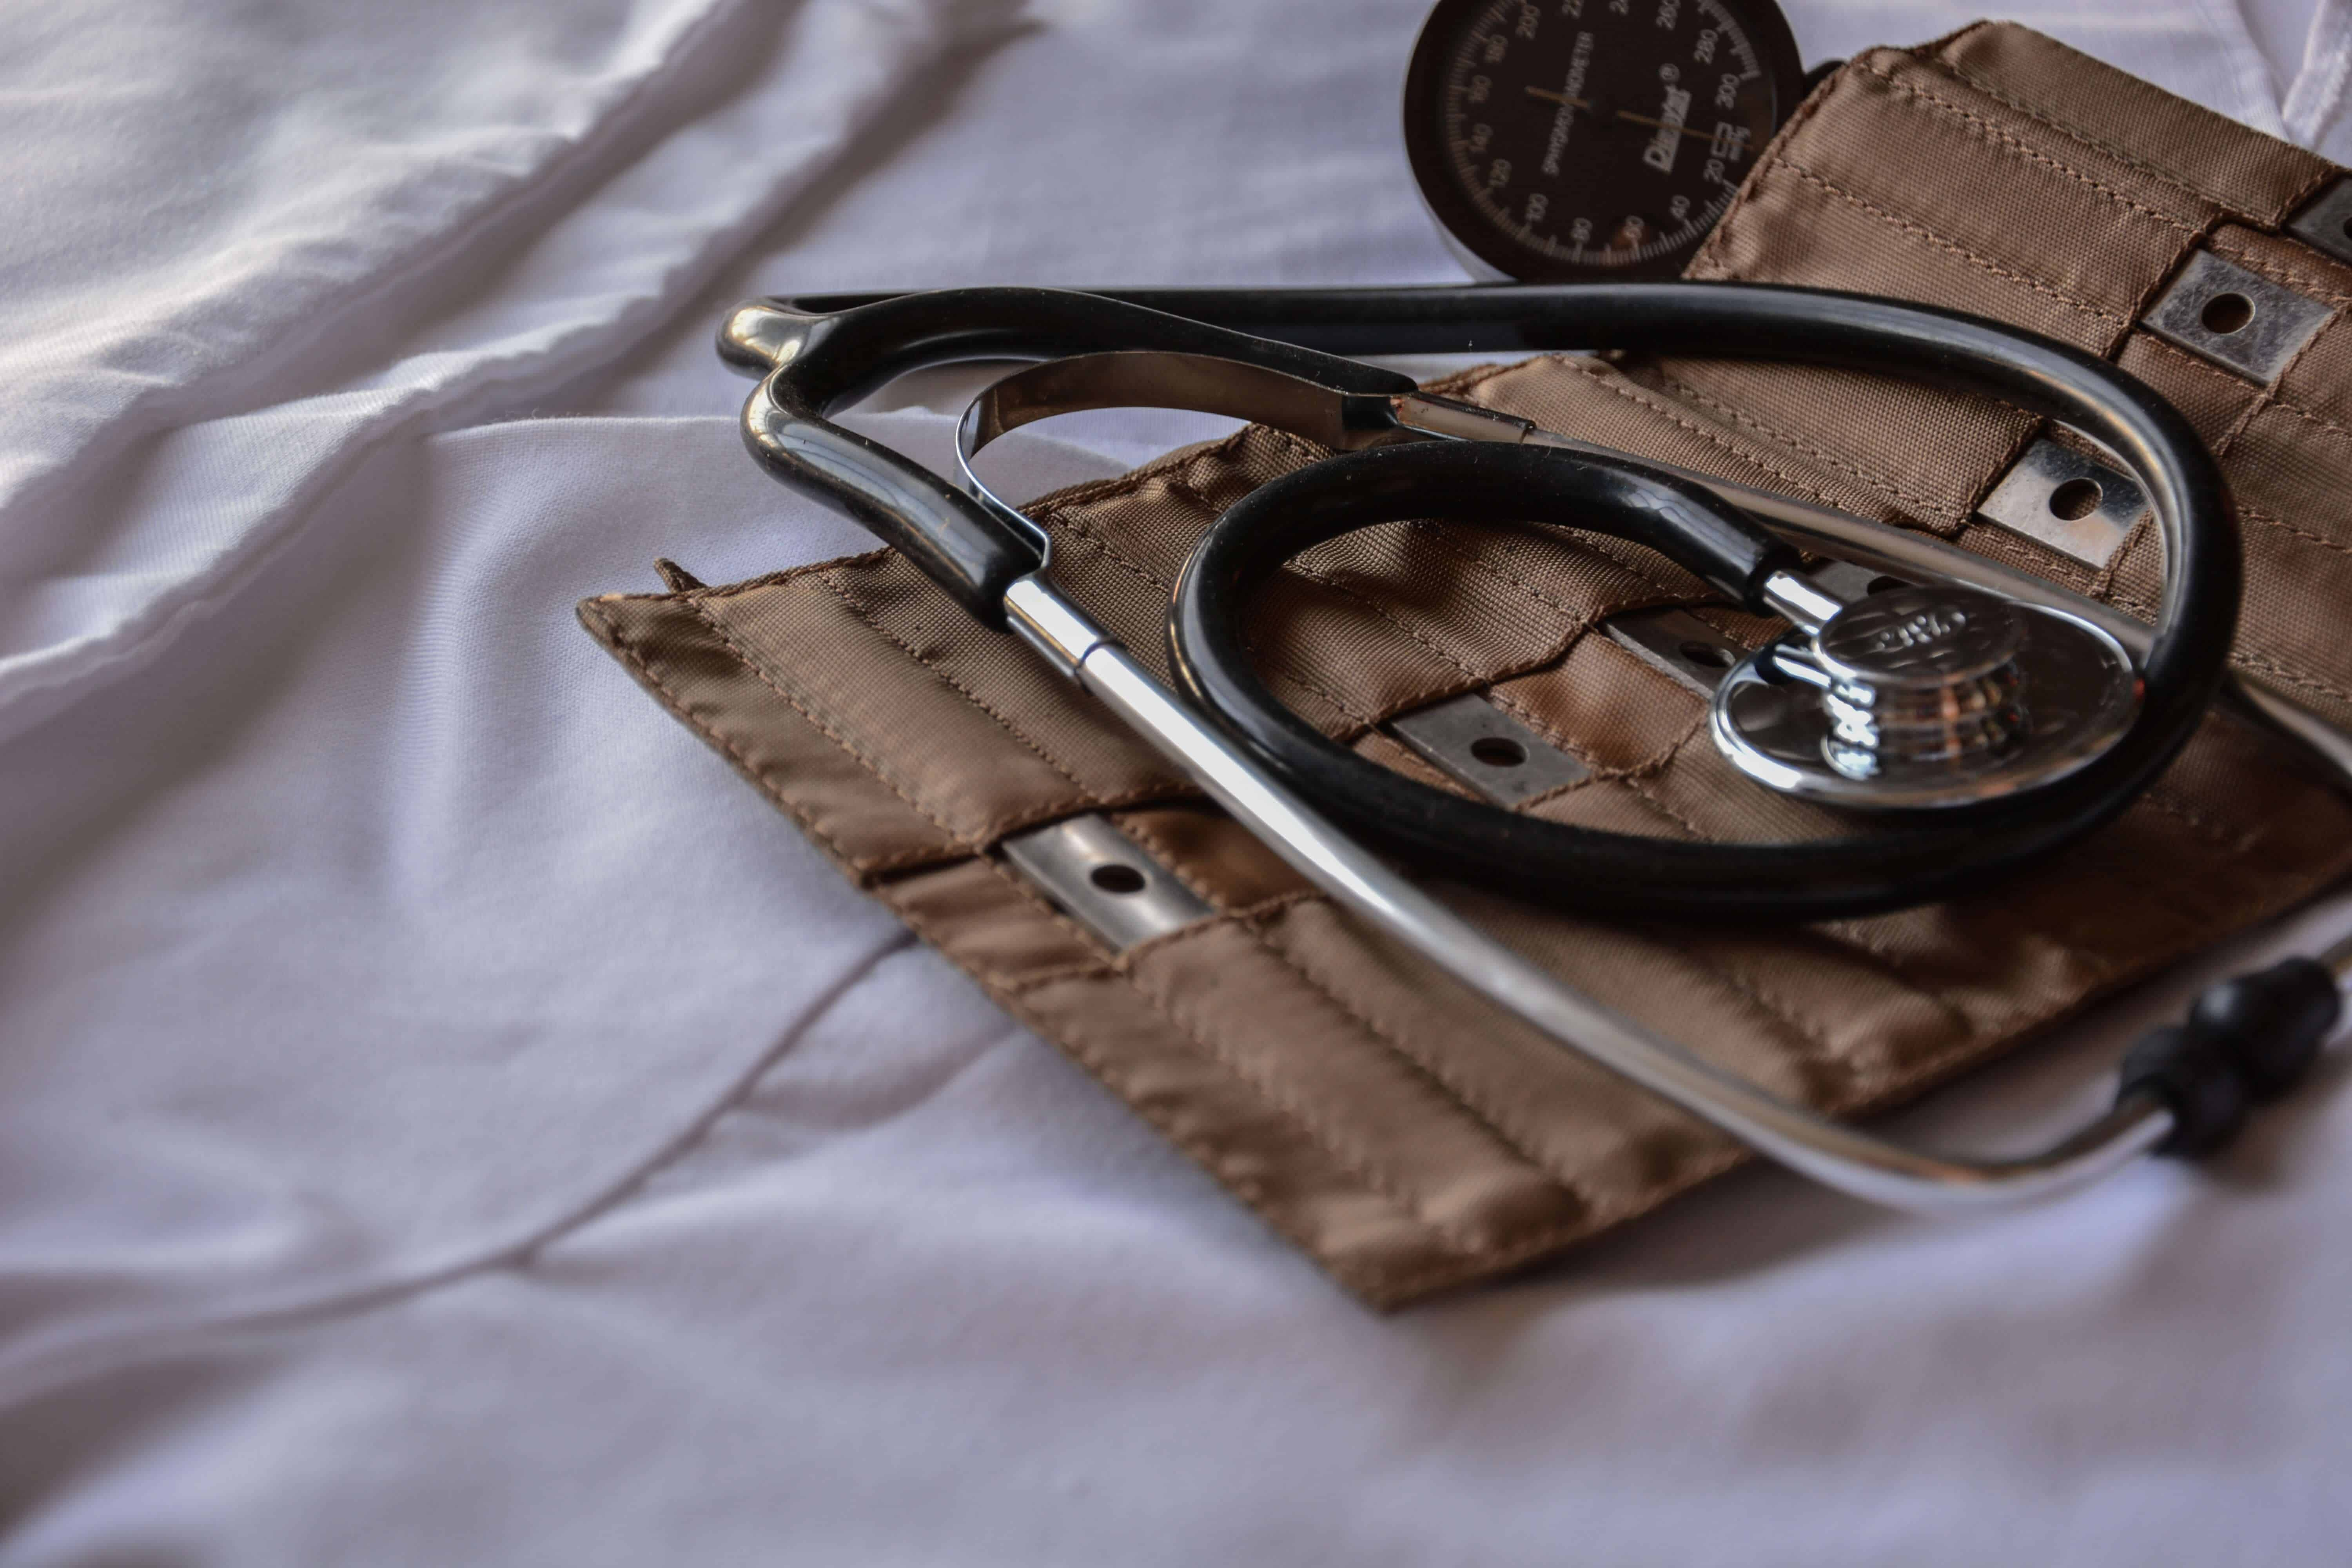 Some points about making a claim against a private doctor from The Medical Negligence Experts